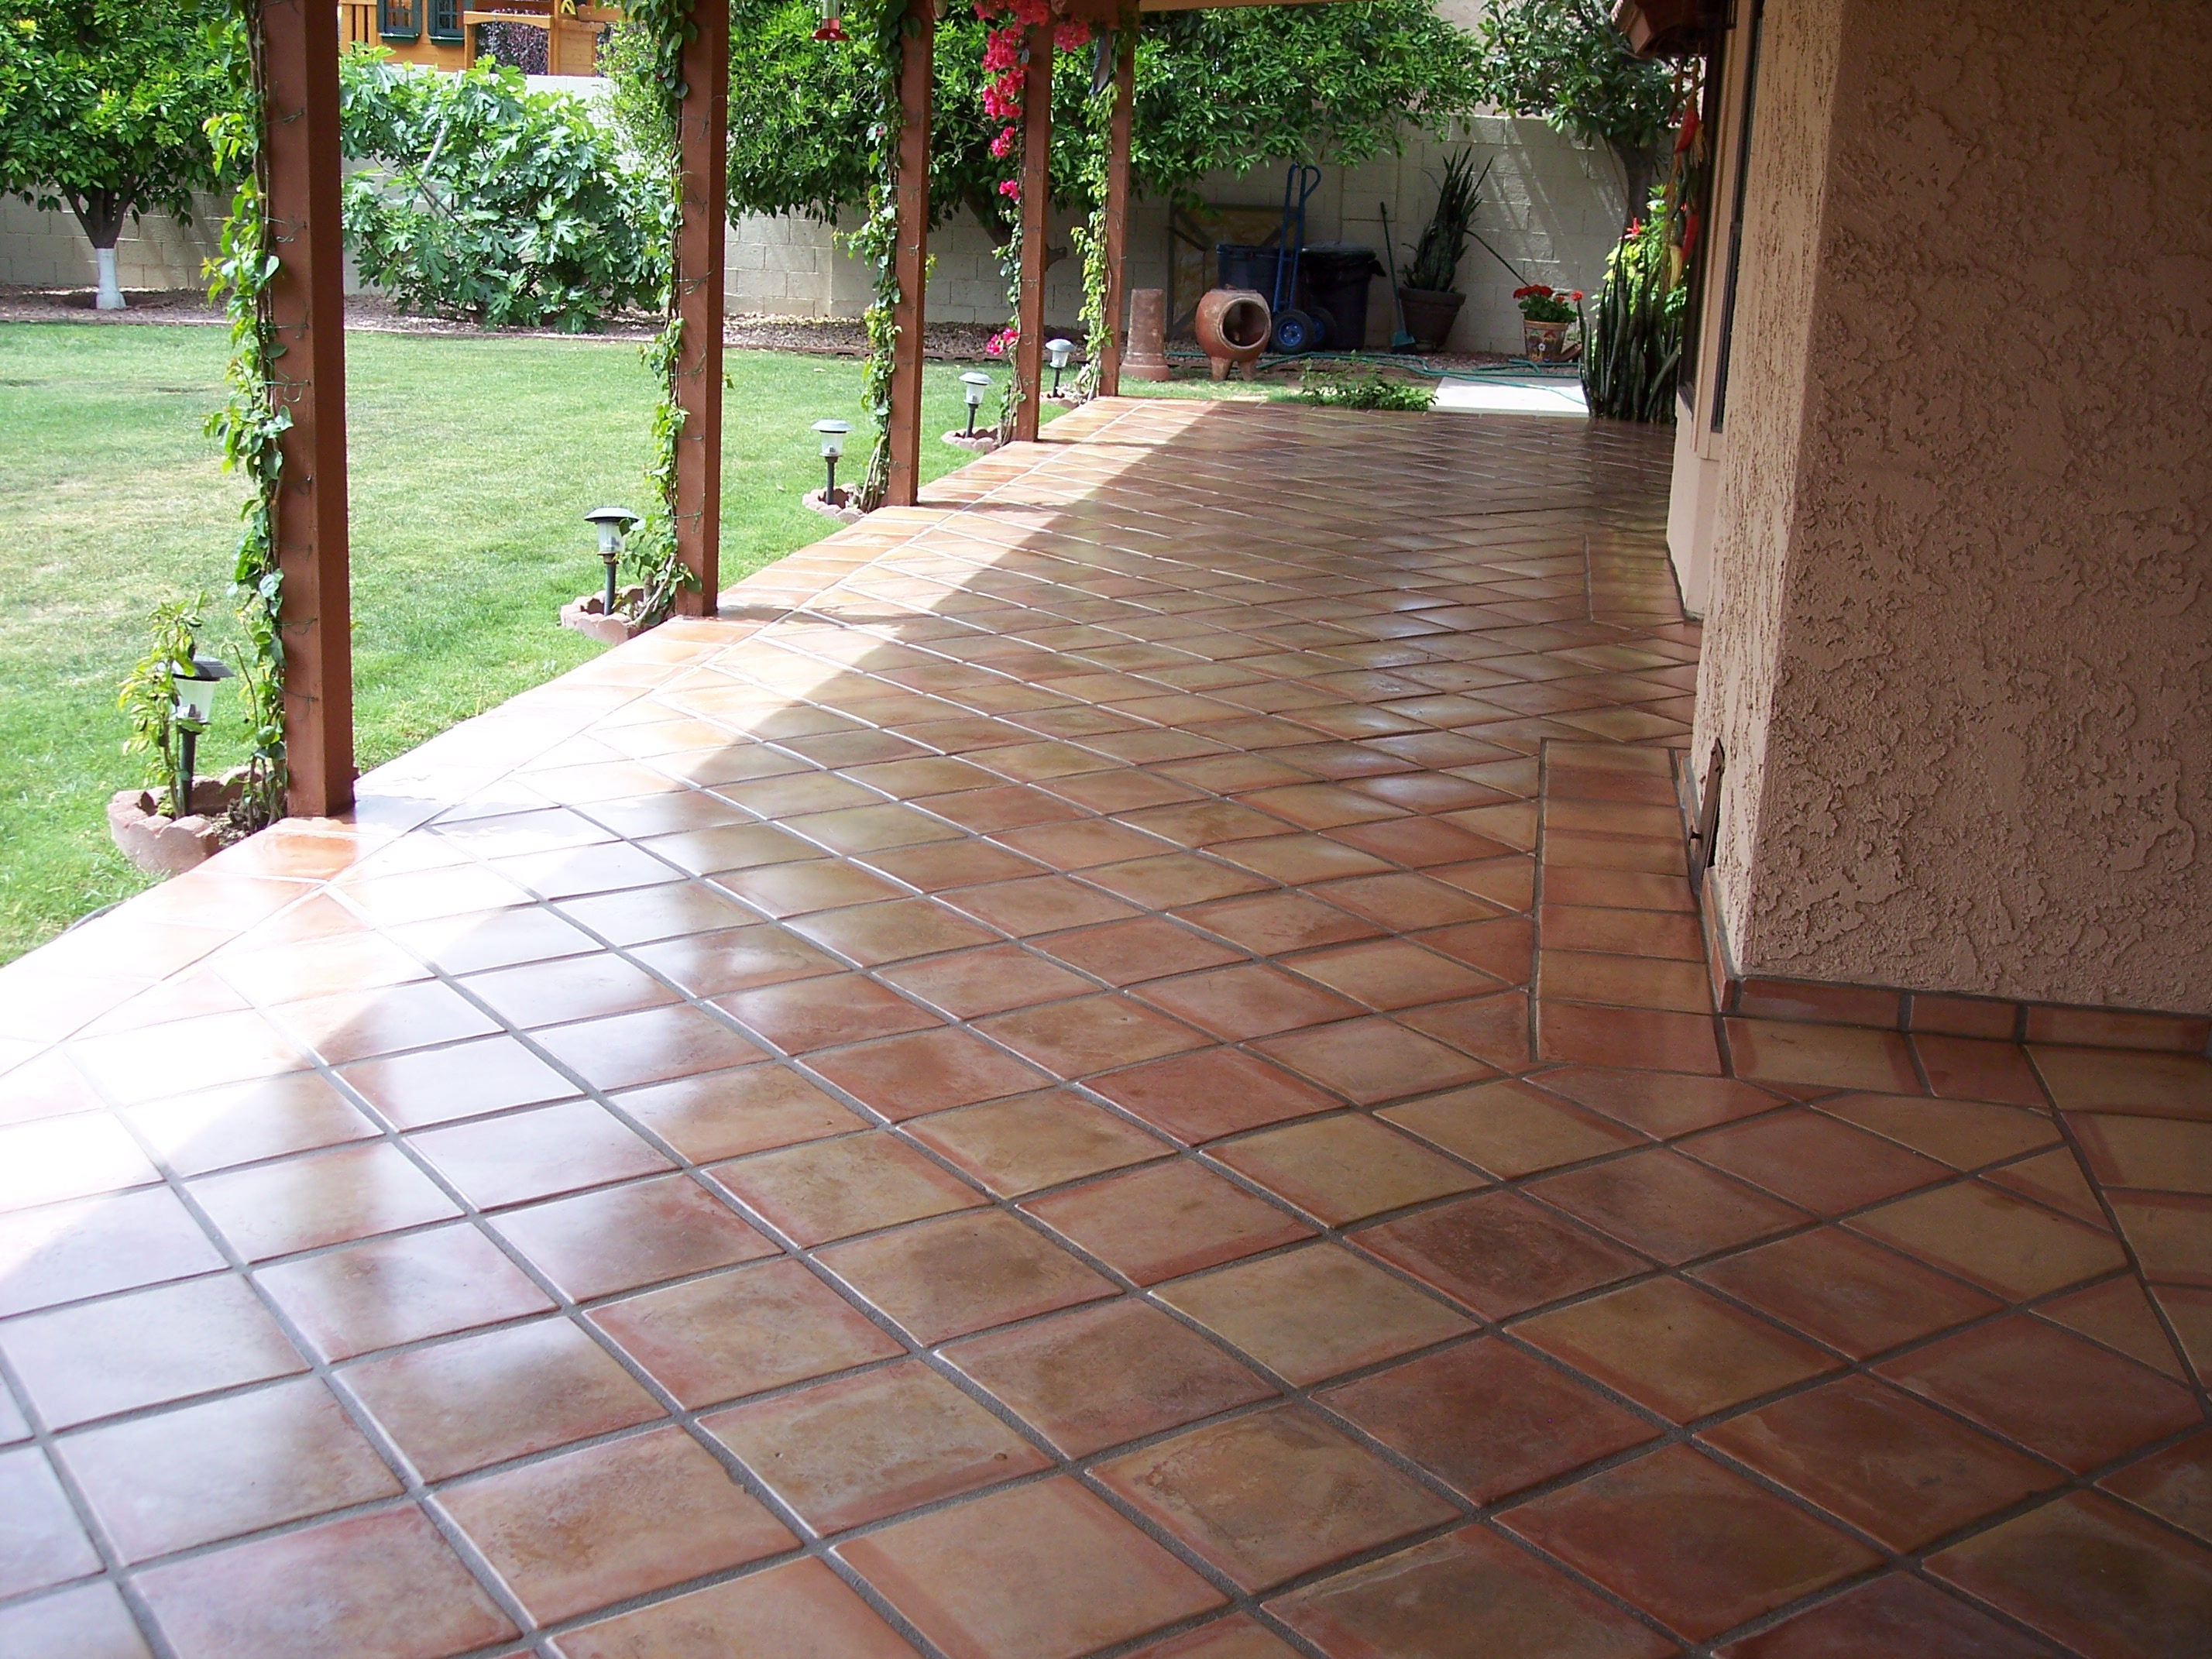 Beau Ultimate Guide To Scottsdale Outdoor Tile Desert Tile Asbestos Floor Inside  Sizing 2856 X 2142